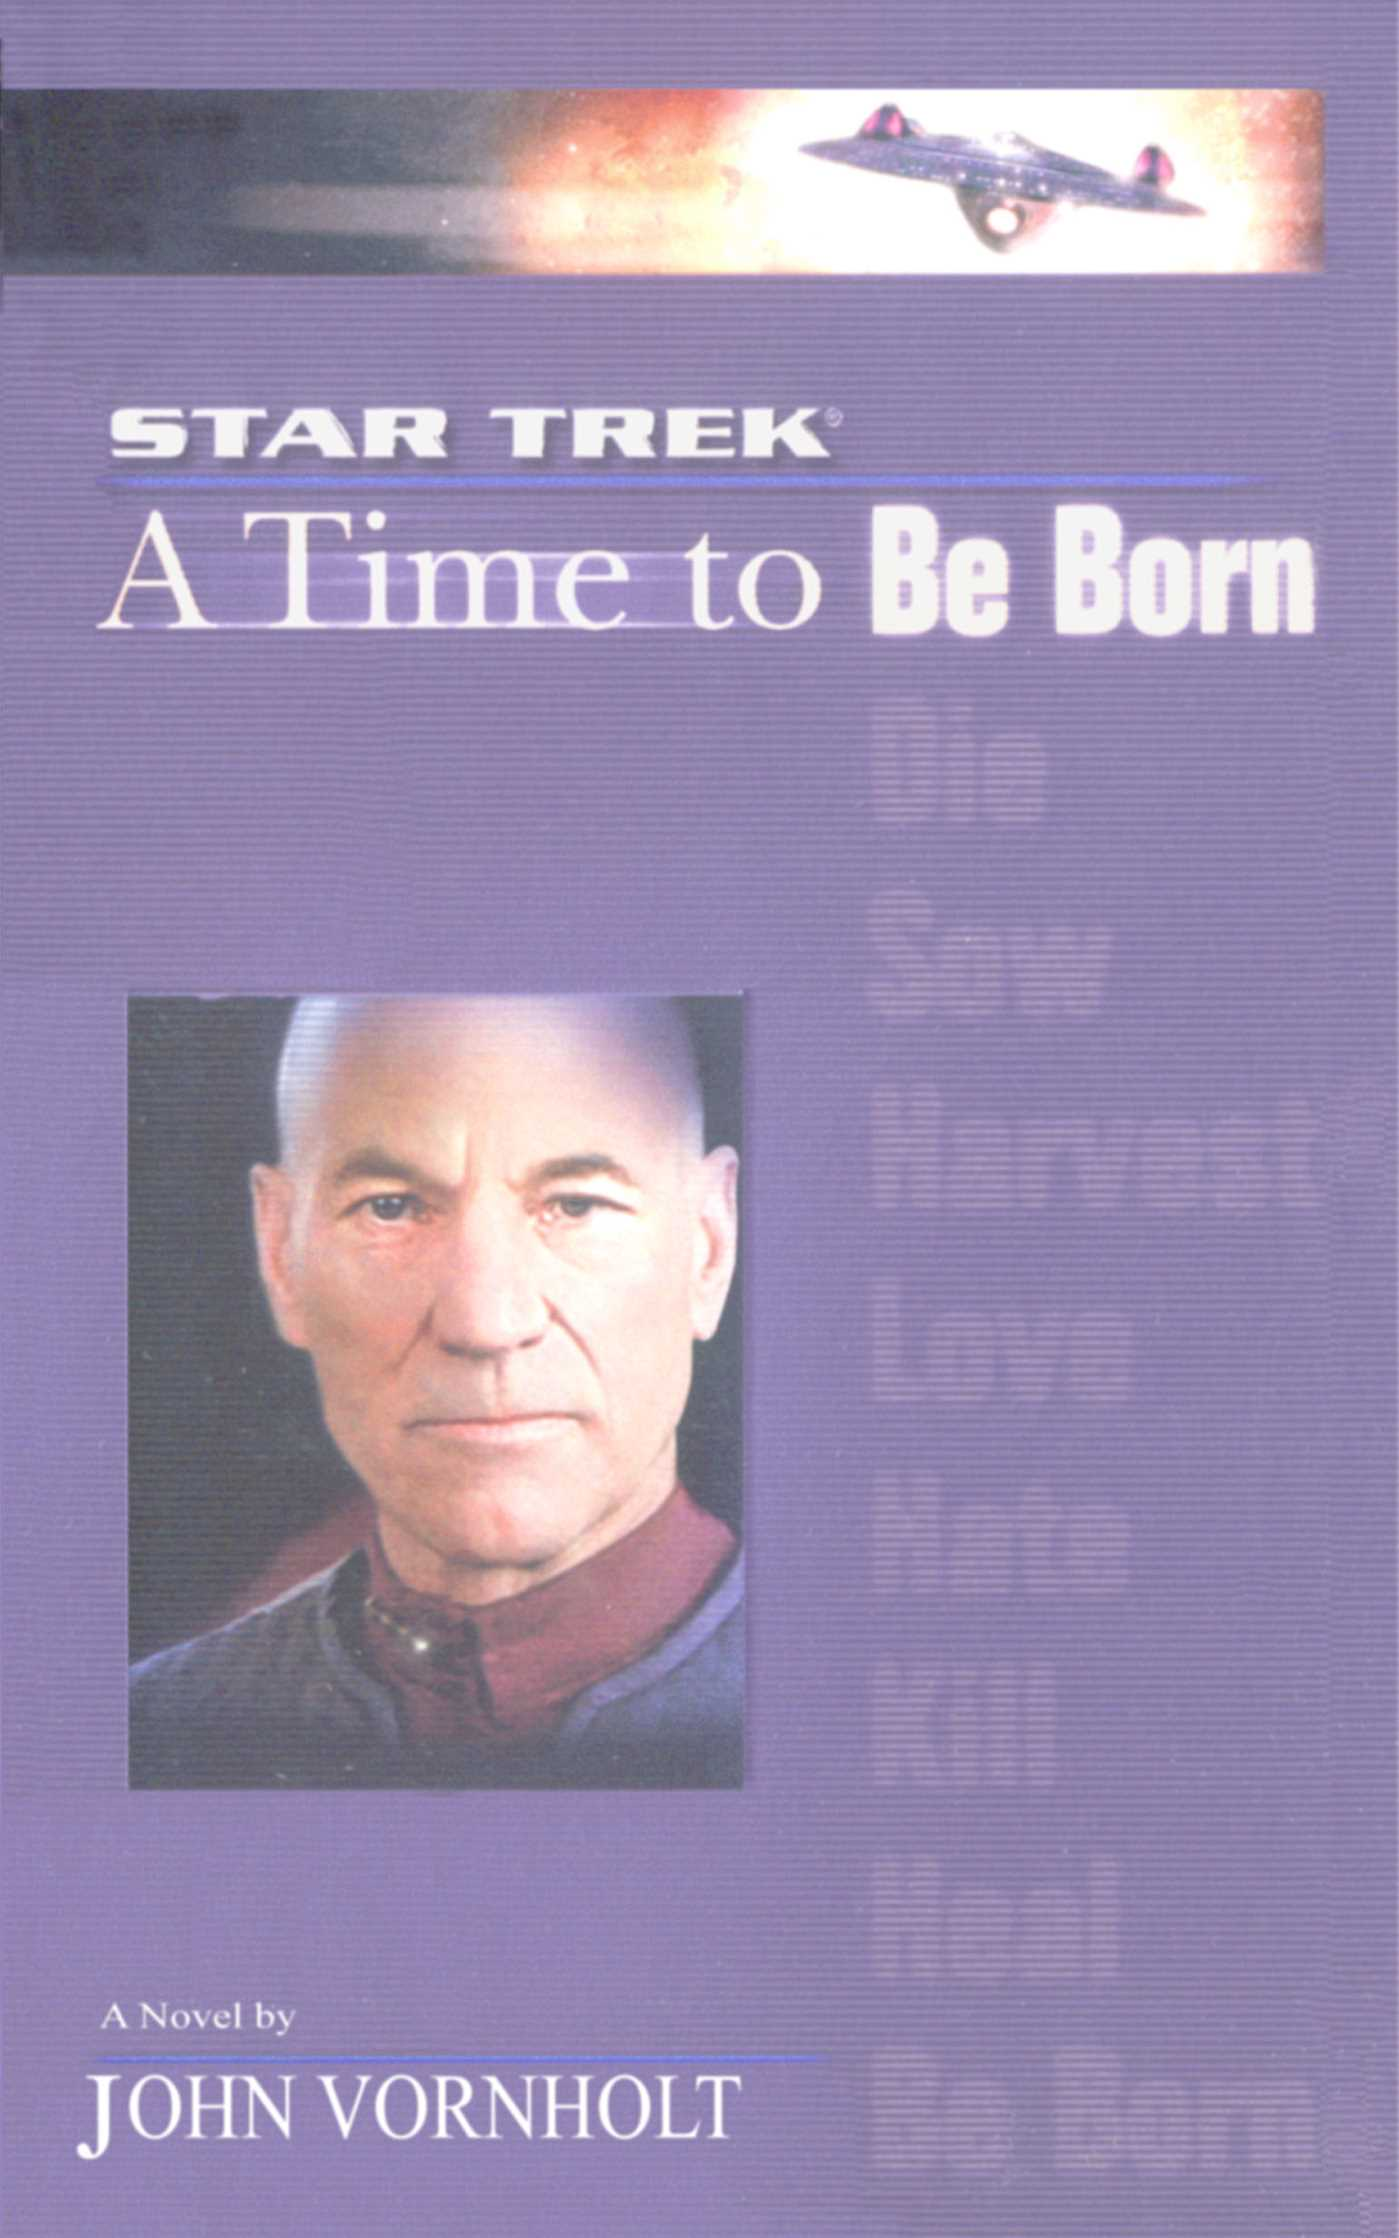 A star trek the next generation time 1 a time to be born 9780743491495 hr